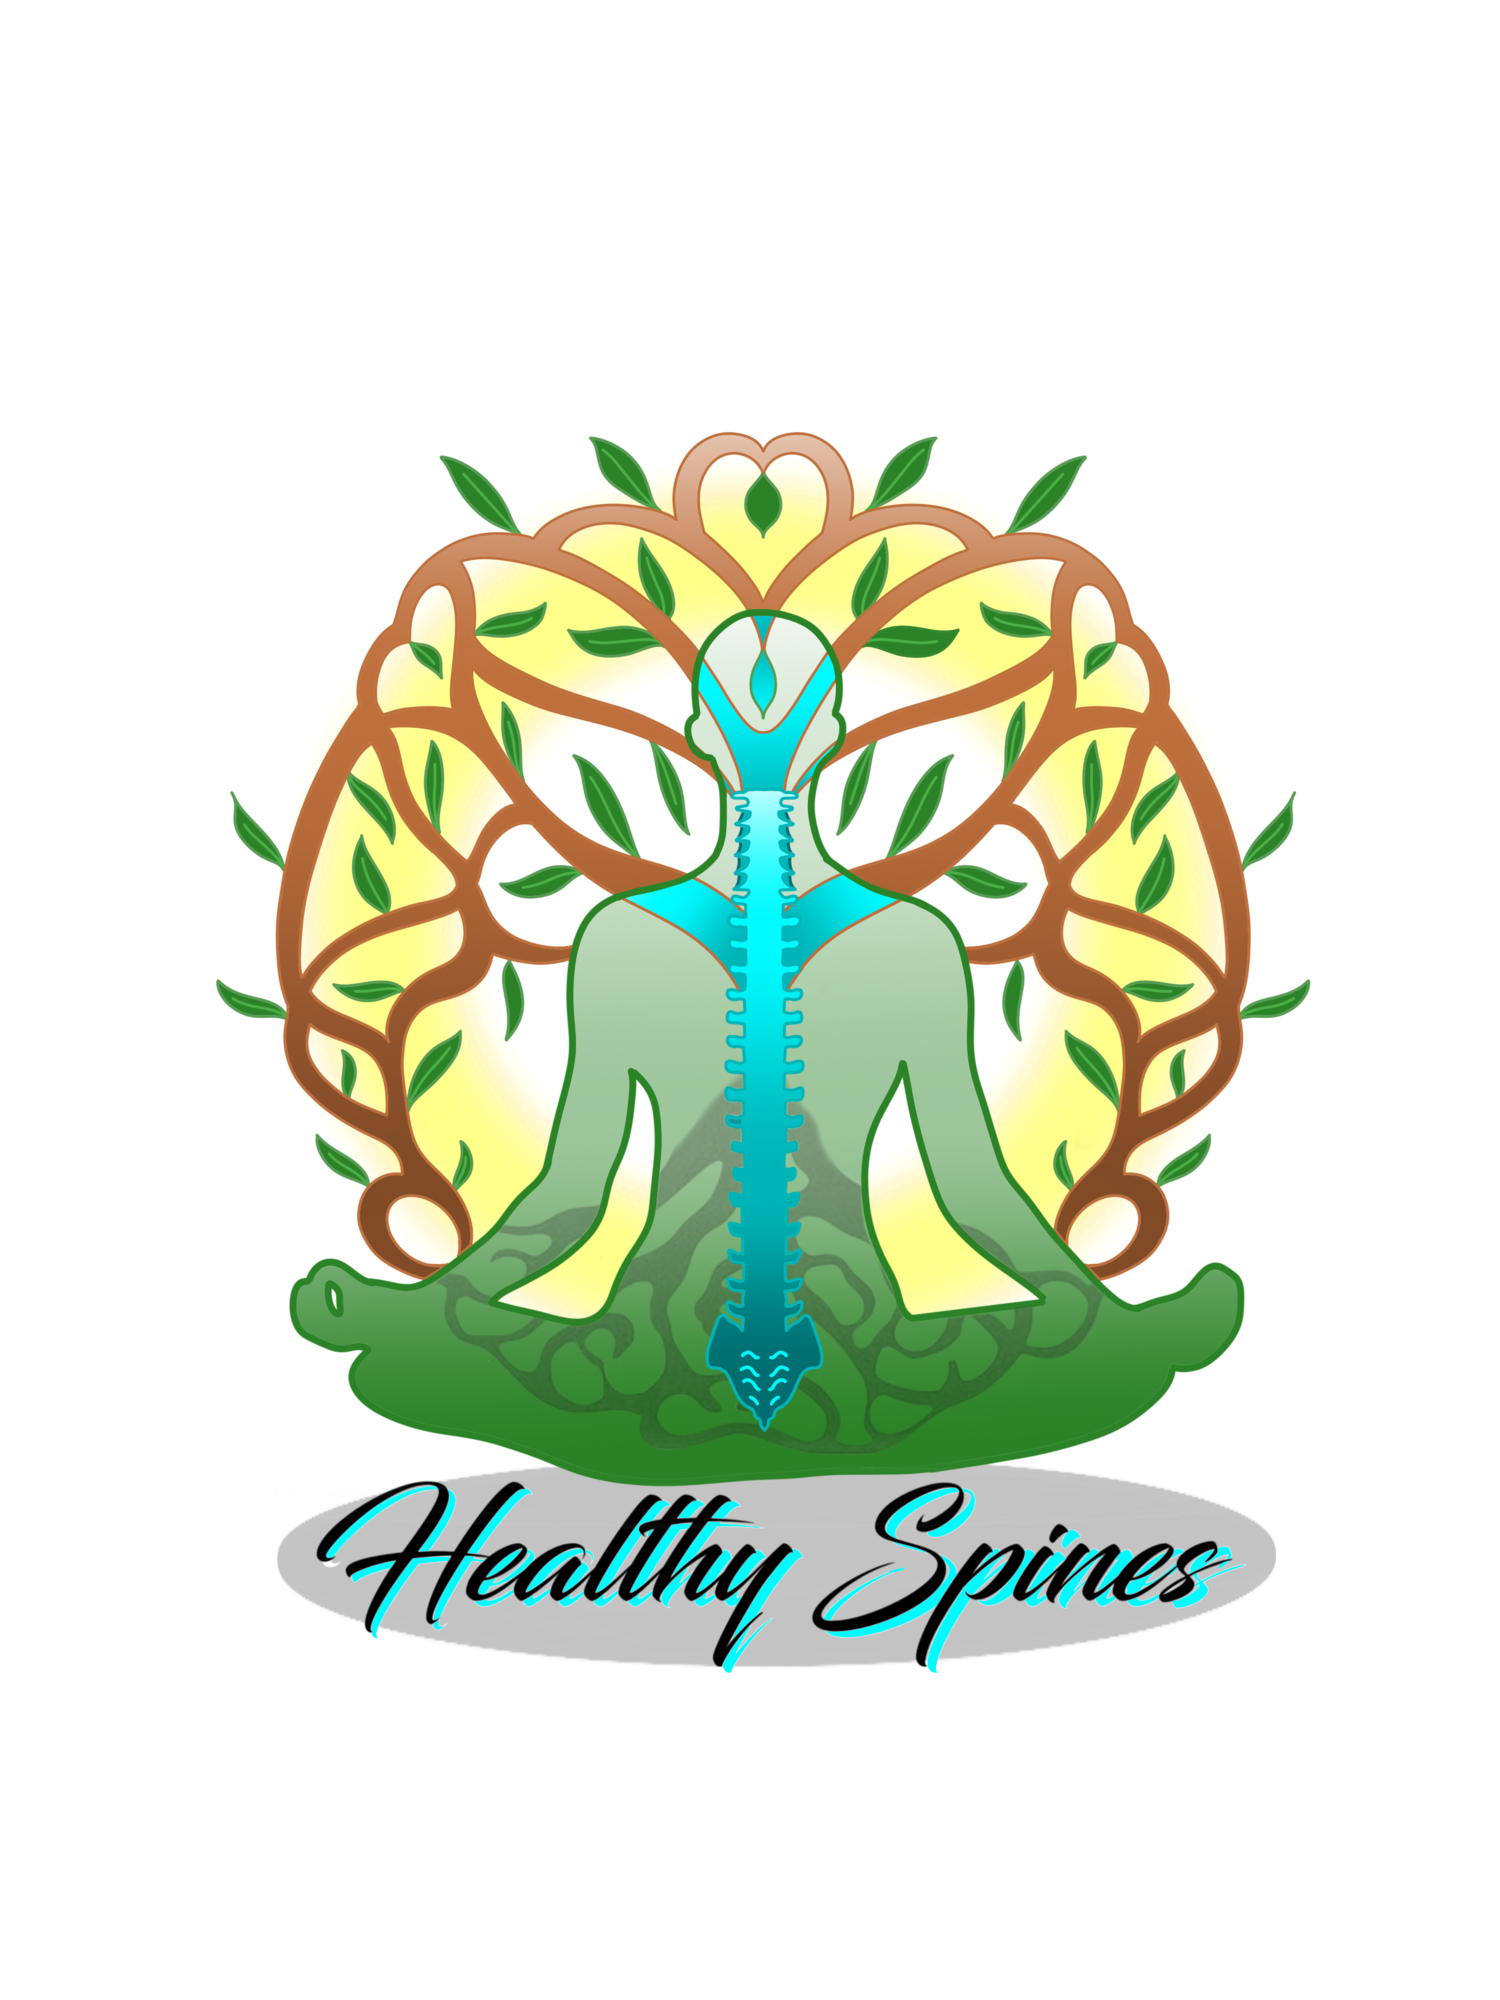 Healthy Spines Chiropractic